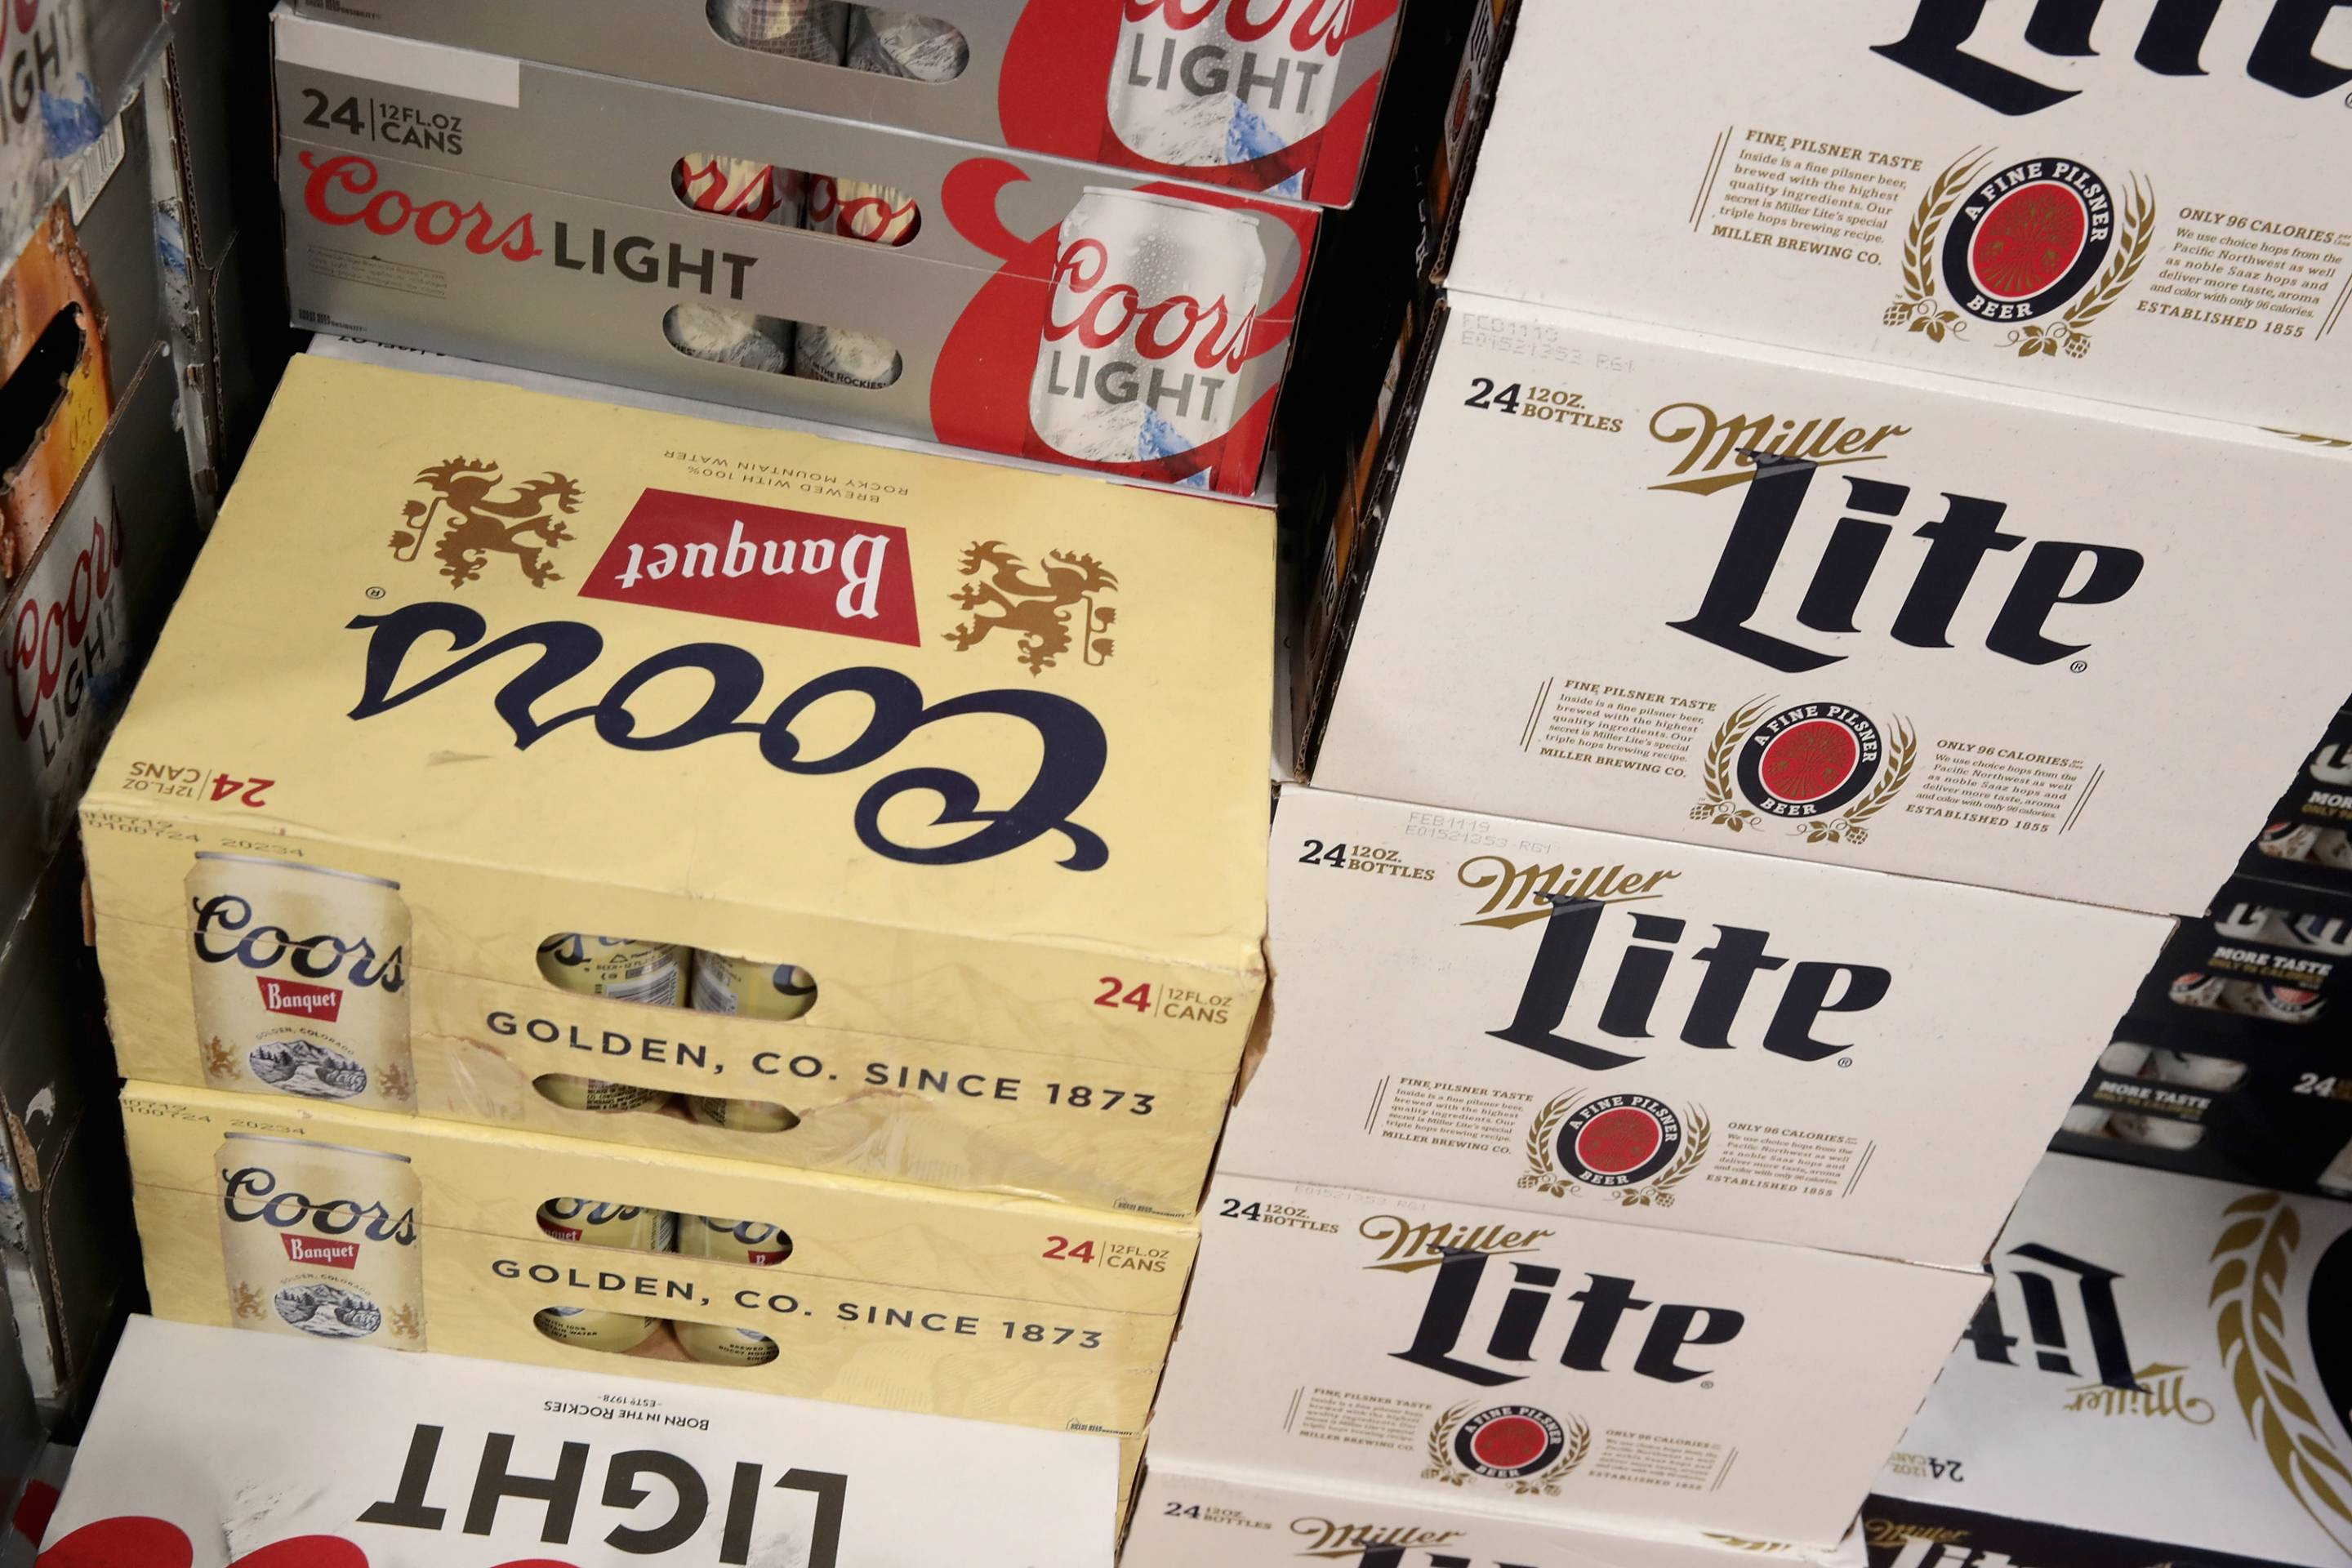 Pabst And MillerCoors Settle Contract Lawsuit That Threaten Pabst Production